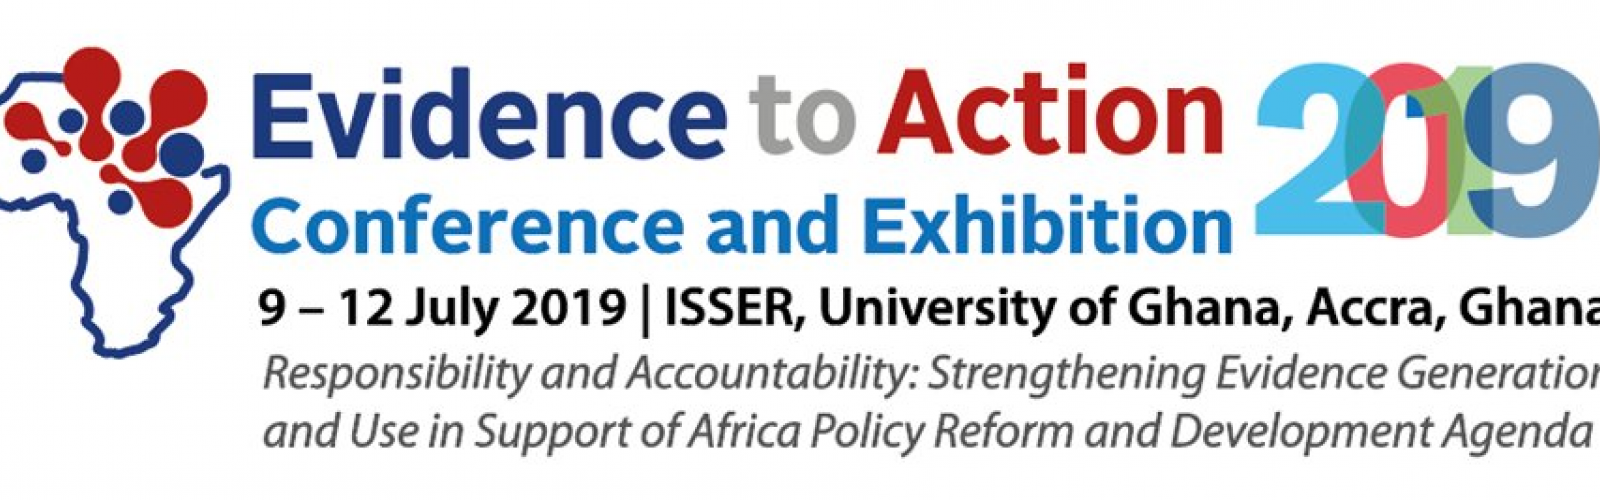 2nd African Evidence to Action Conference and Exhibition 2019 | Eval